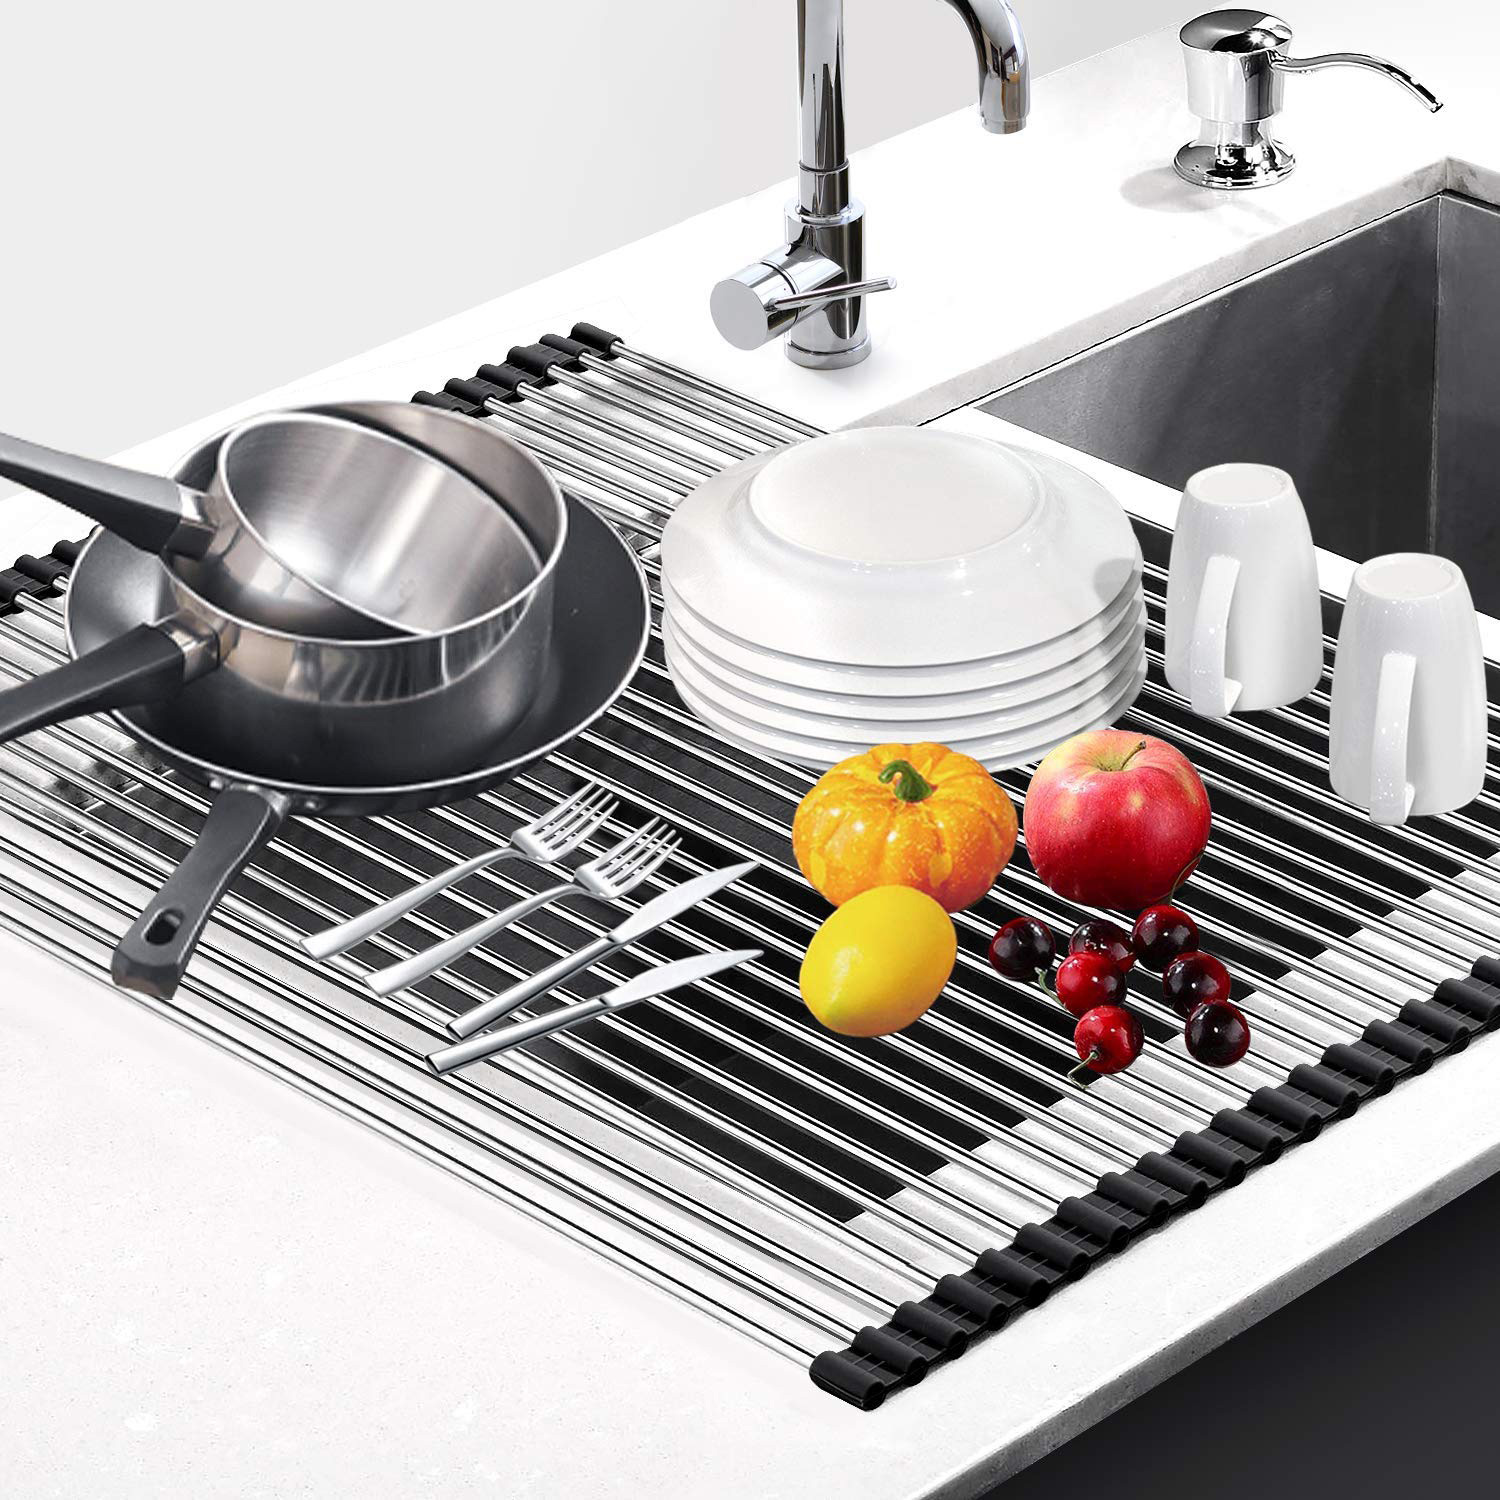 G-Ting Roll Up Over Sink Dish Drying Rack